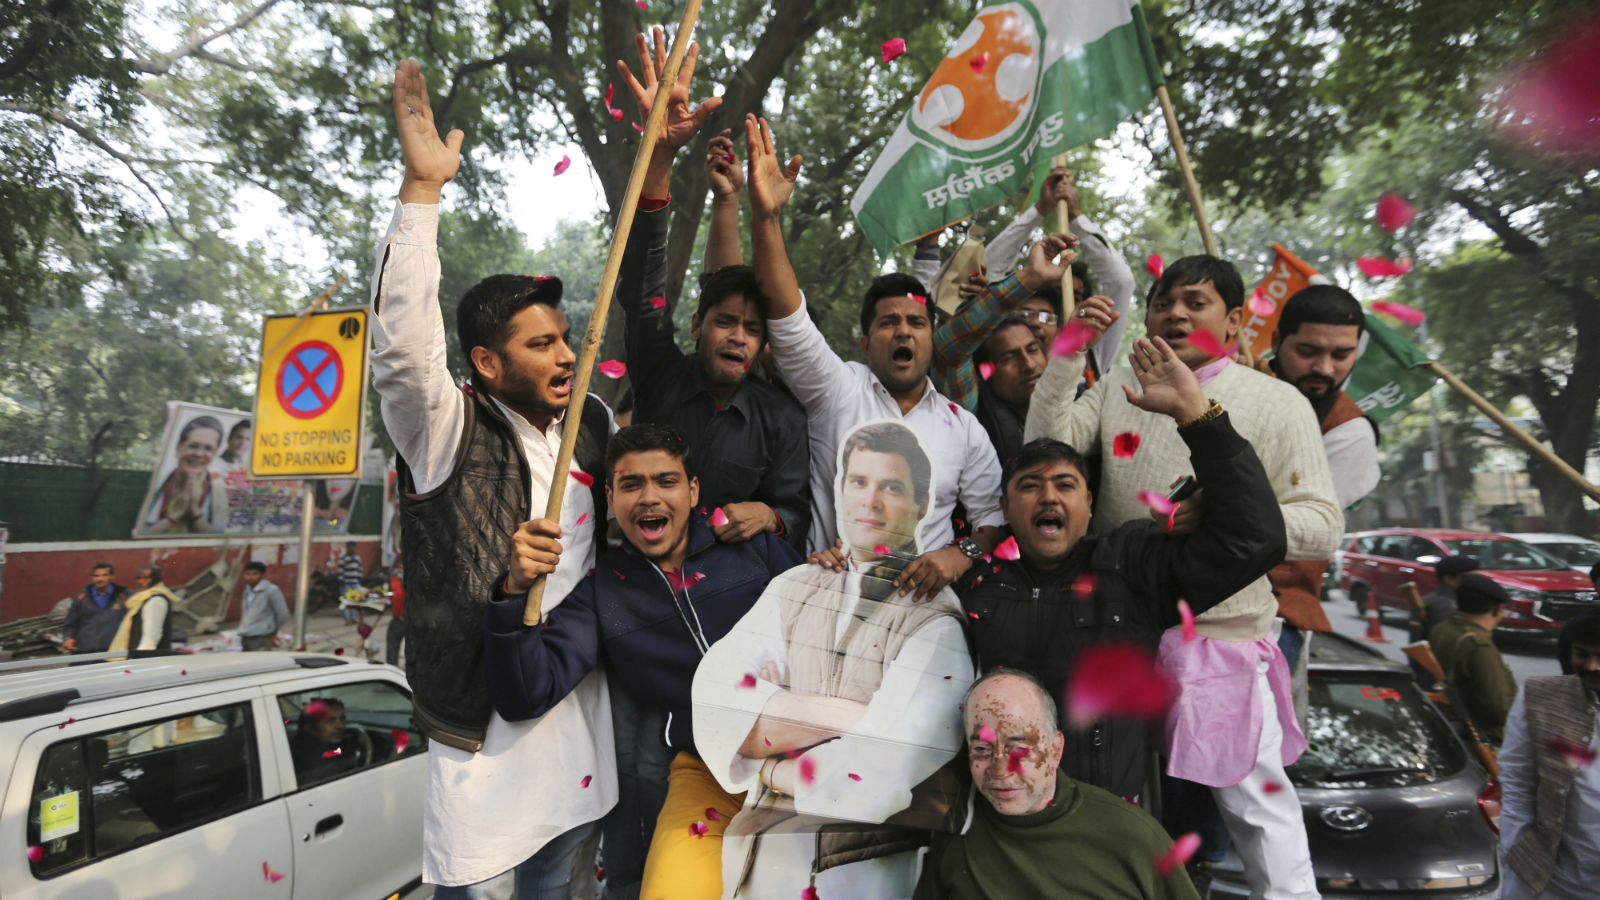 Surveys and data are key weapons in the great Indian political battle of 2019